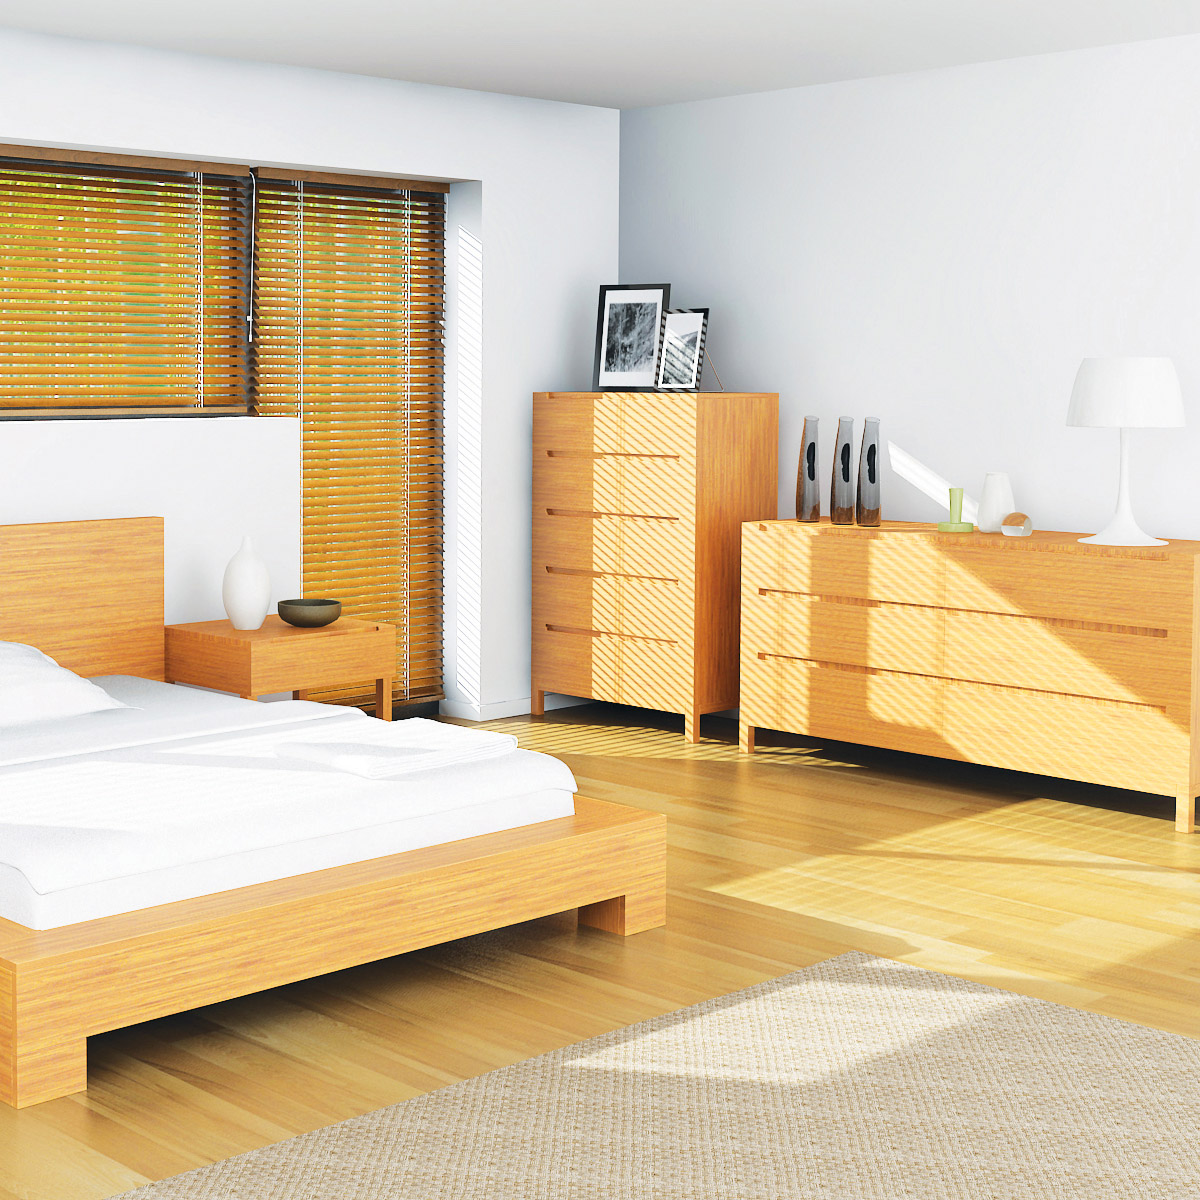 Enviro Bamboo 5 Drawer Chest The Enviro Bamboo 5 Drawer Chest offers modern style with sustainable furniture construction.  A luxurious yet simple chest of drawers with 5 easy glide drawers and notched drawer pulls. Coordinates with the Enviro Platform Bed.